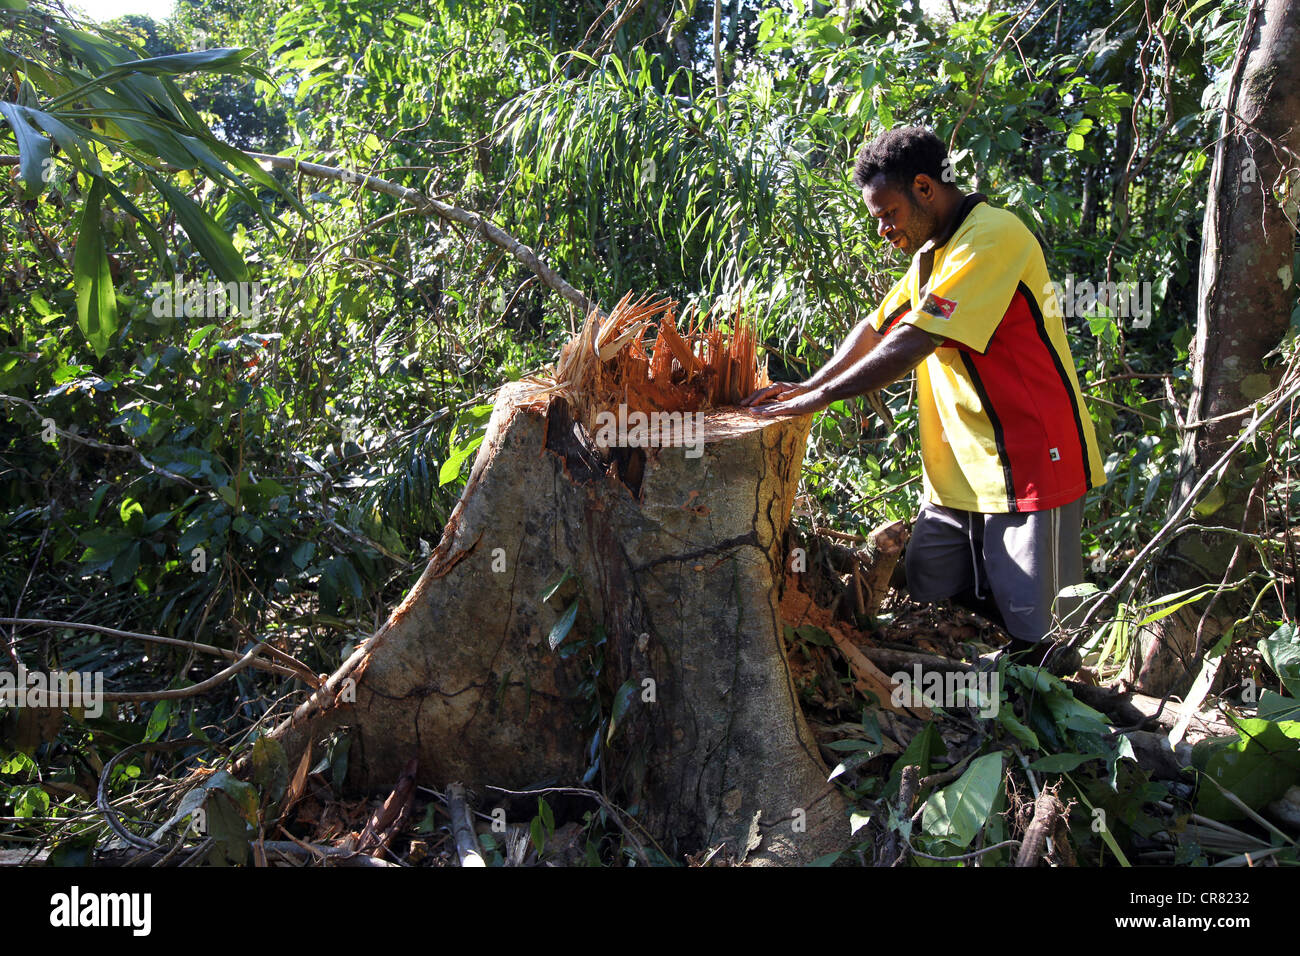 Lumberjack in a clearing of a log area, province of Madang, Papua Neuguinea - Stock Image